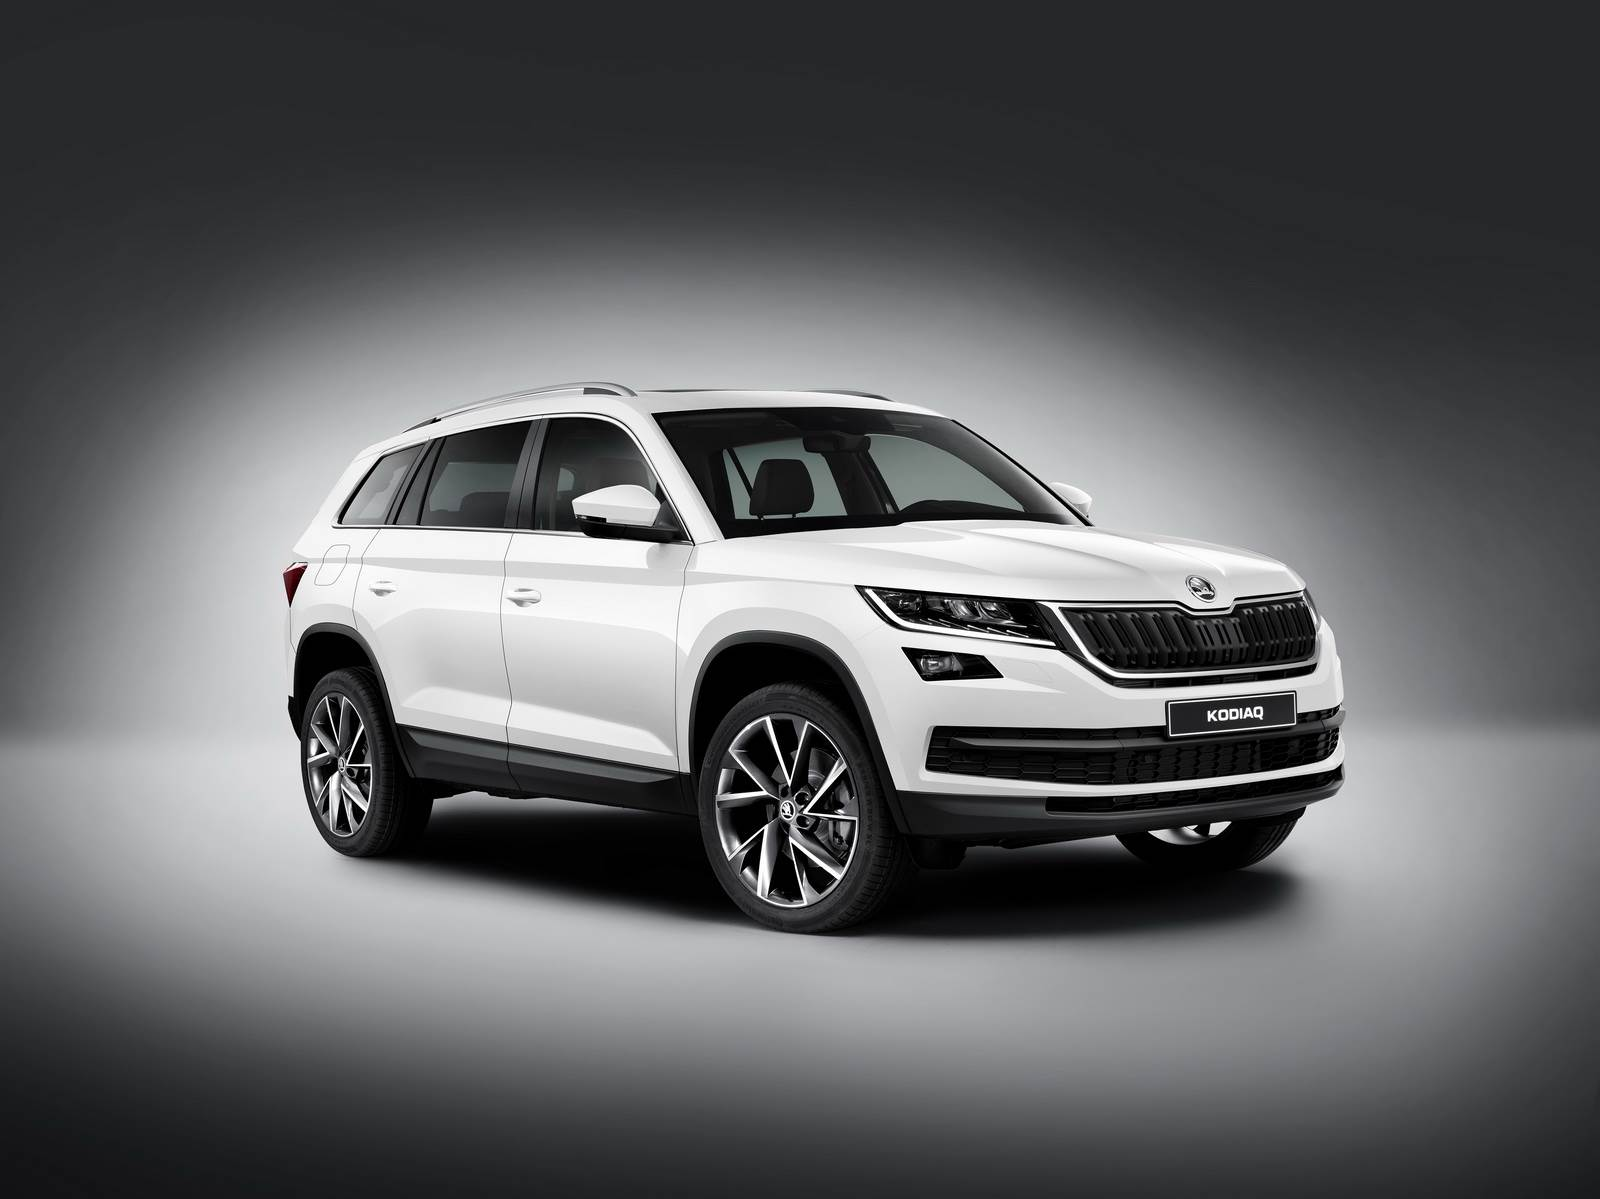 Skoda Kodiaq SUV, Octavia RS, Rapid Monte Carlo India plans revealed